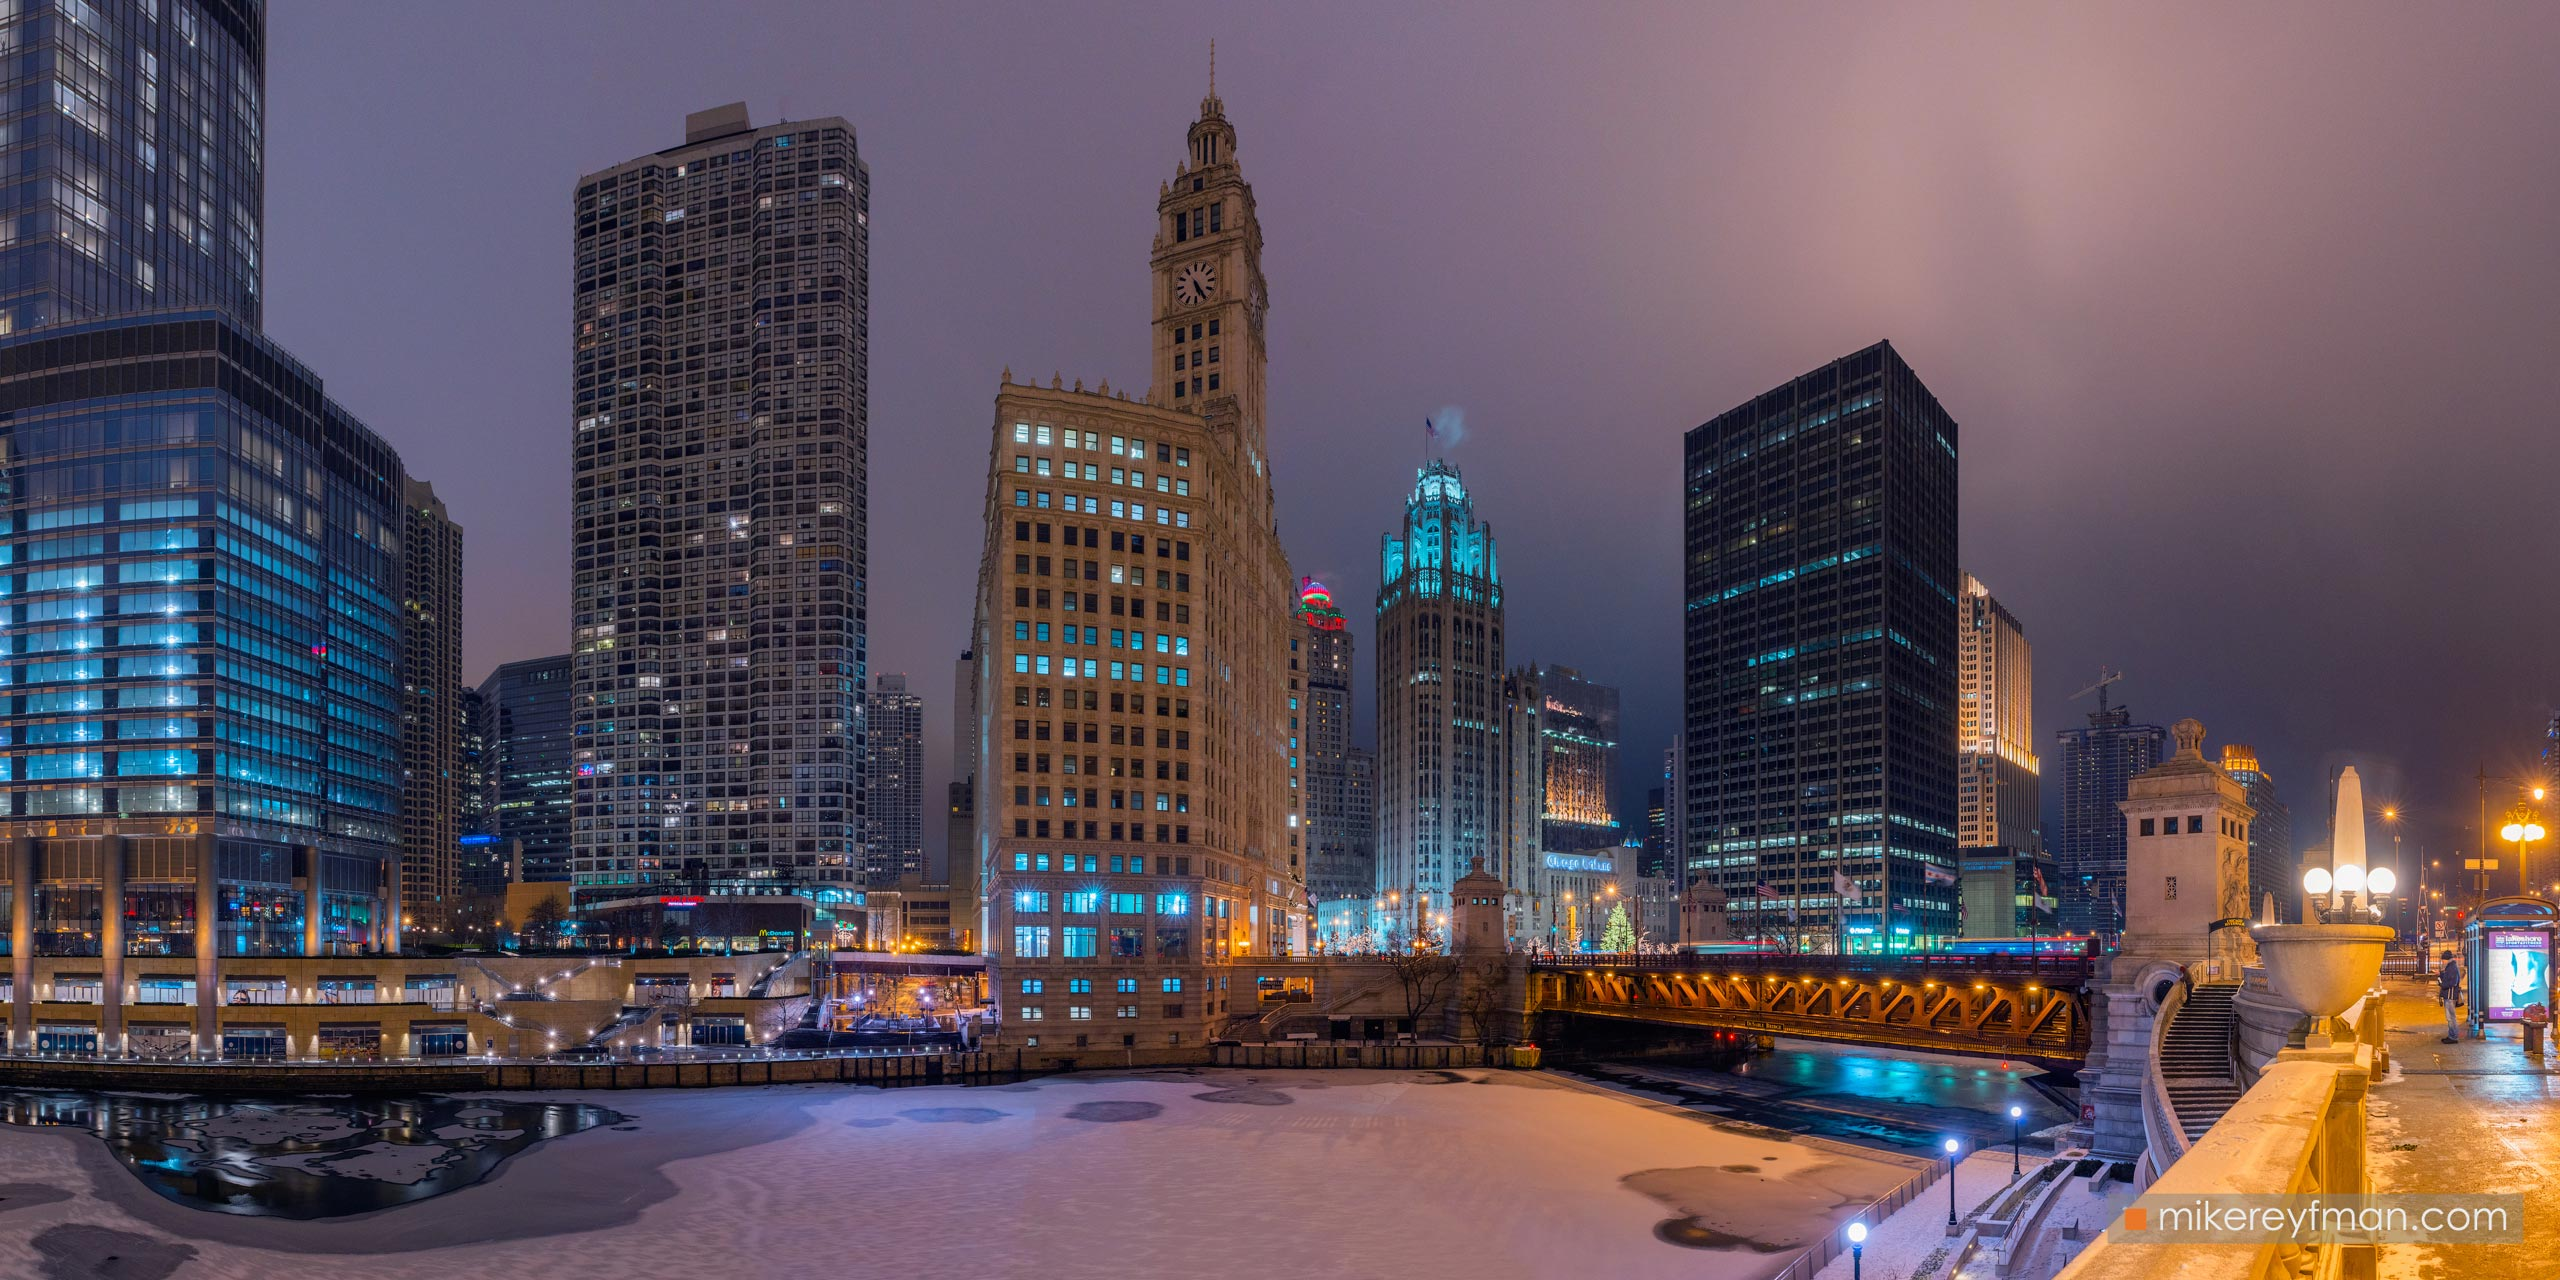 City at Night. Chicago, Illinois, USA. 067-CH1-D8C8148_Pano_1x2 - Chicago, USA: The